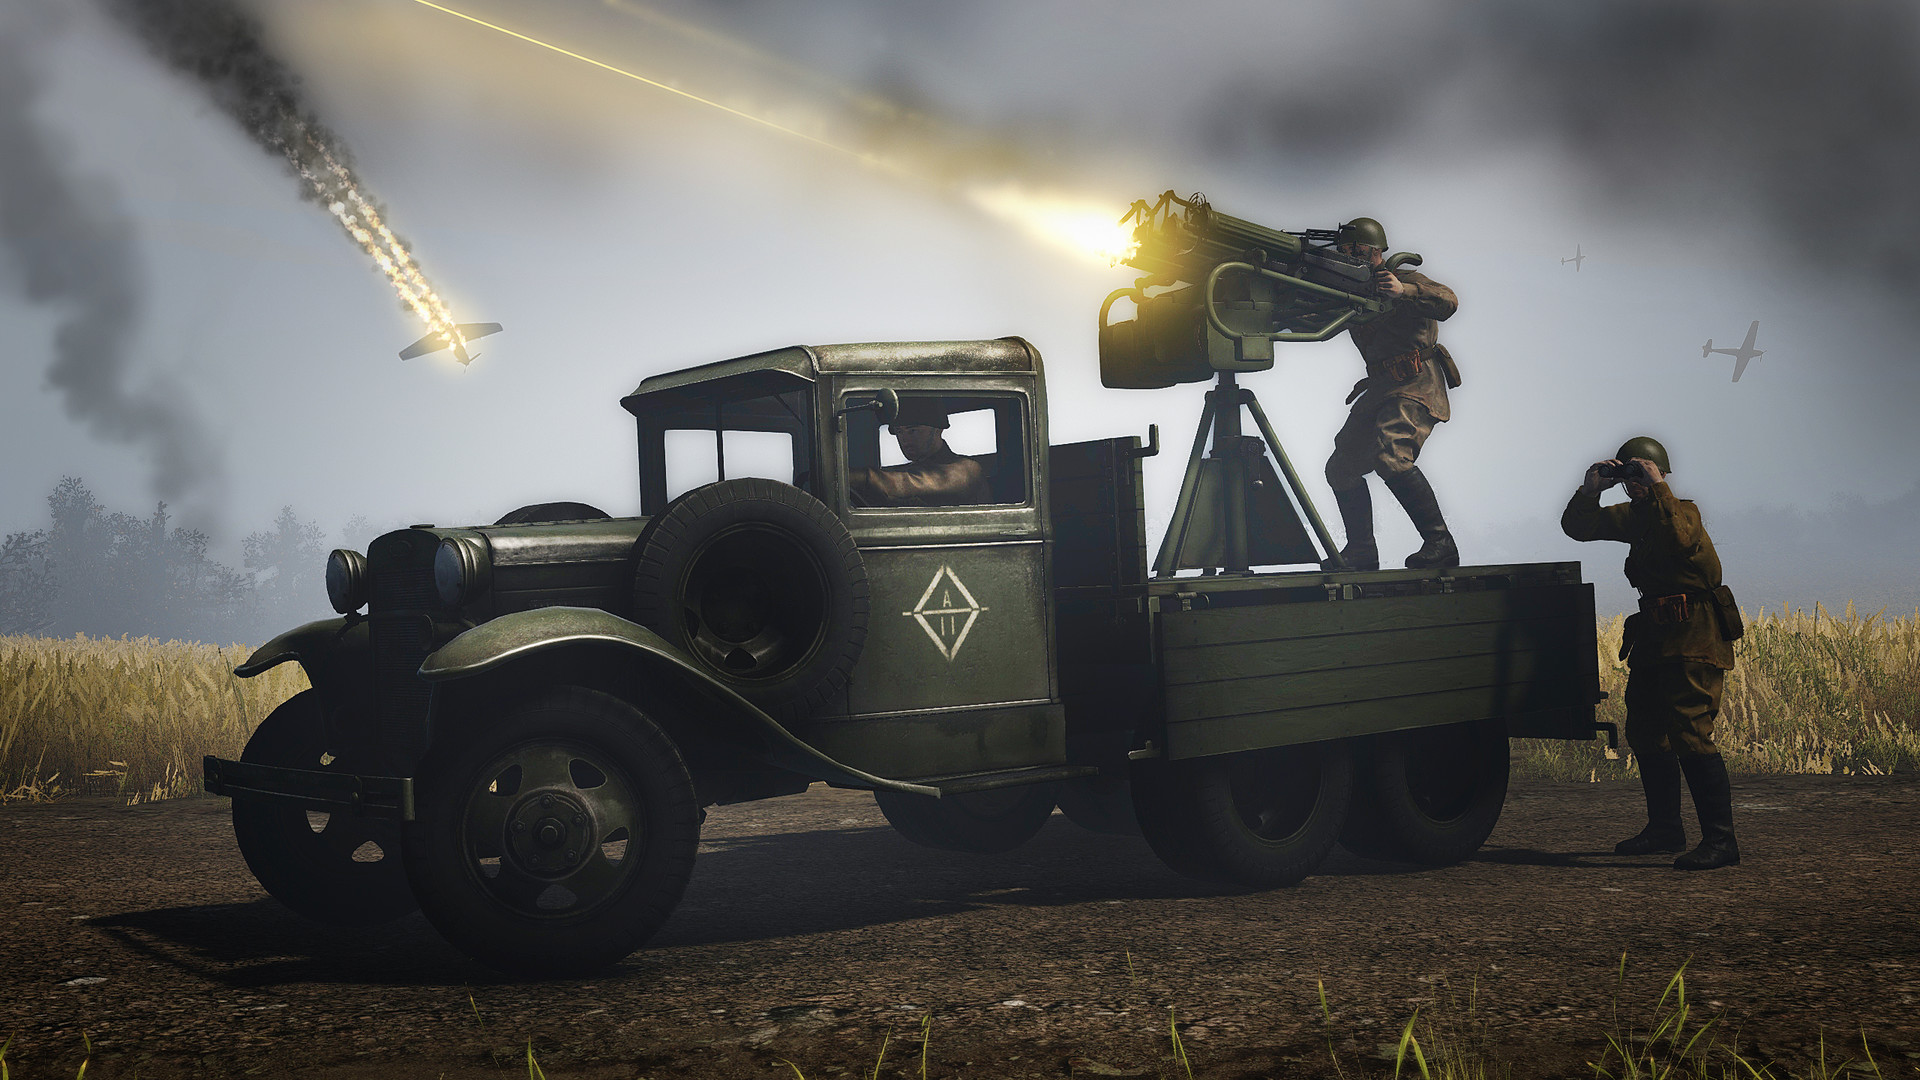 matchmaking groups heroes and generals